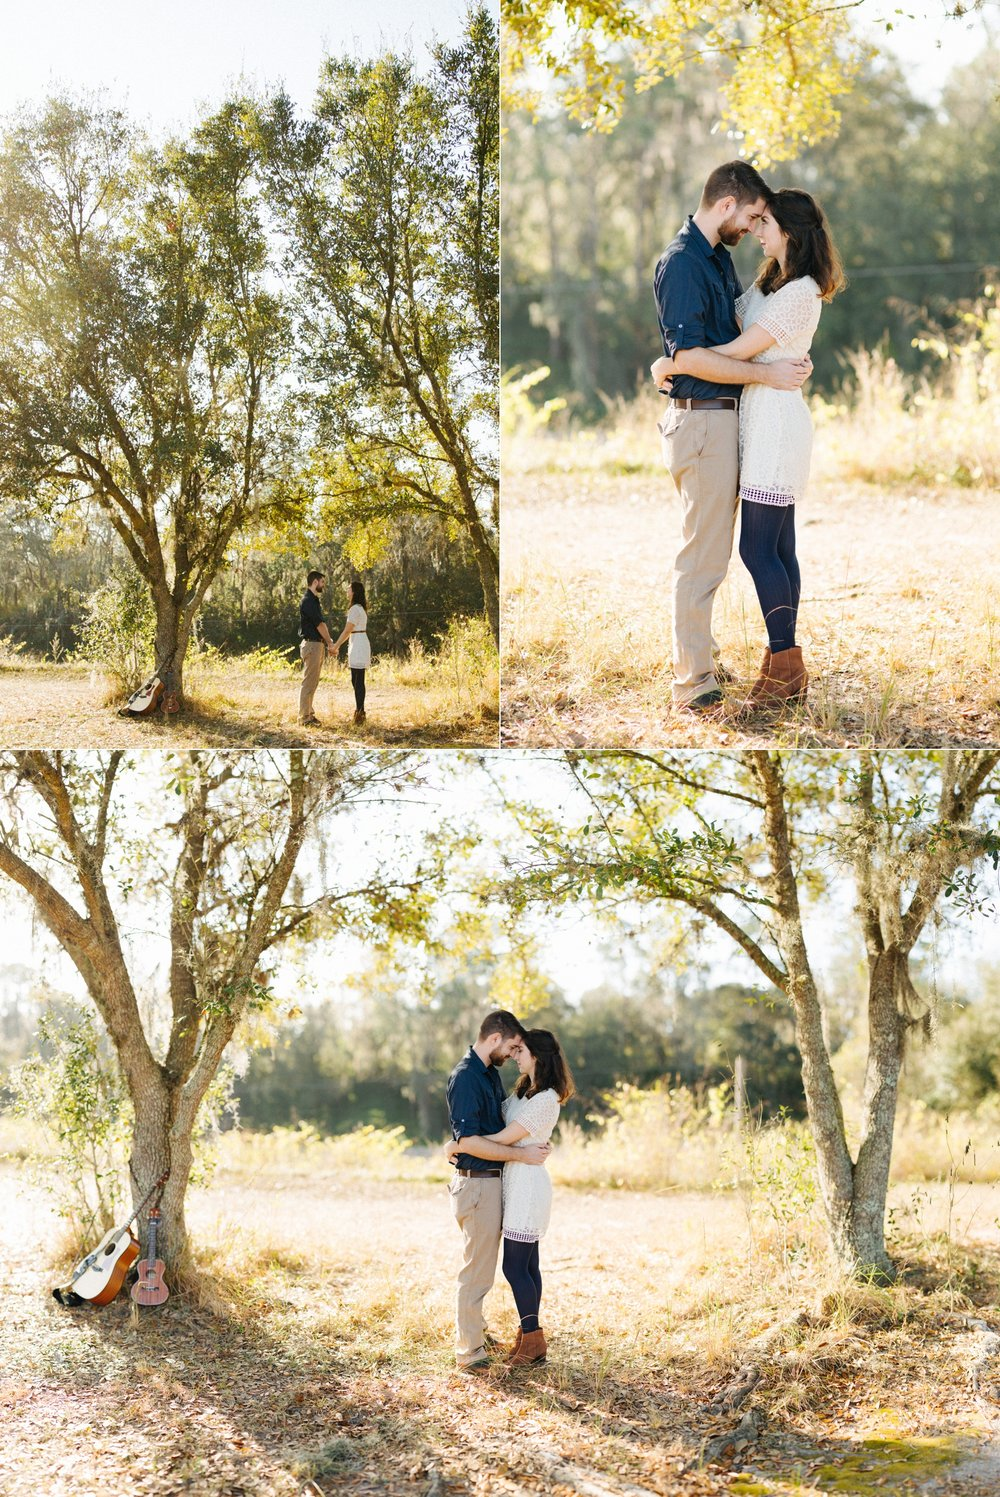 tampa engagement photographer jarrod kayleigh proposal jake and katie photography-009.jpg